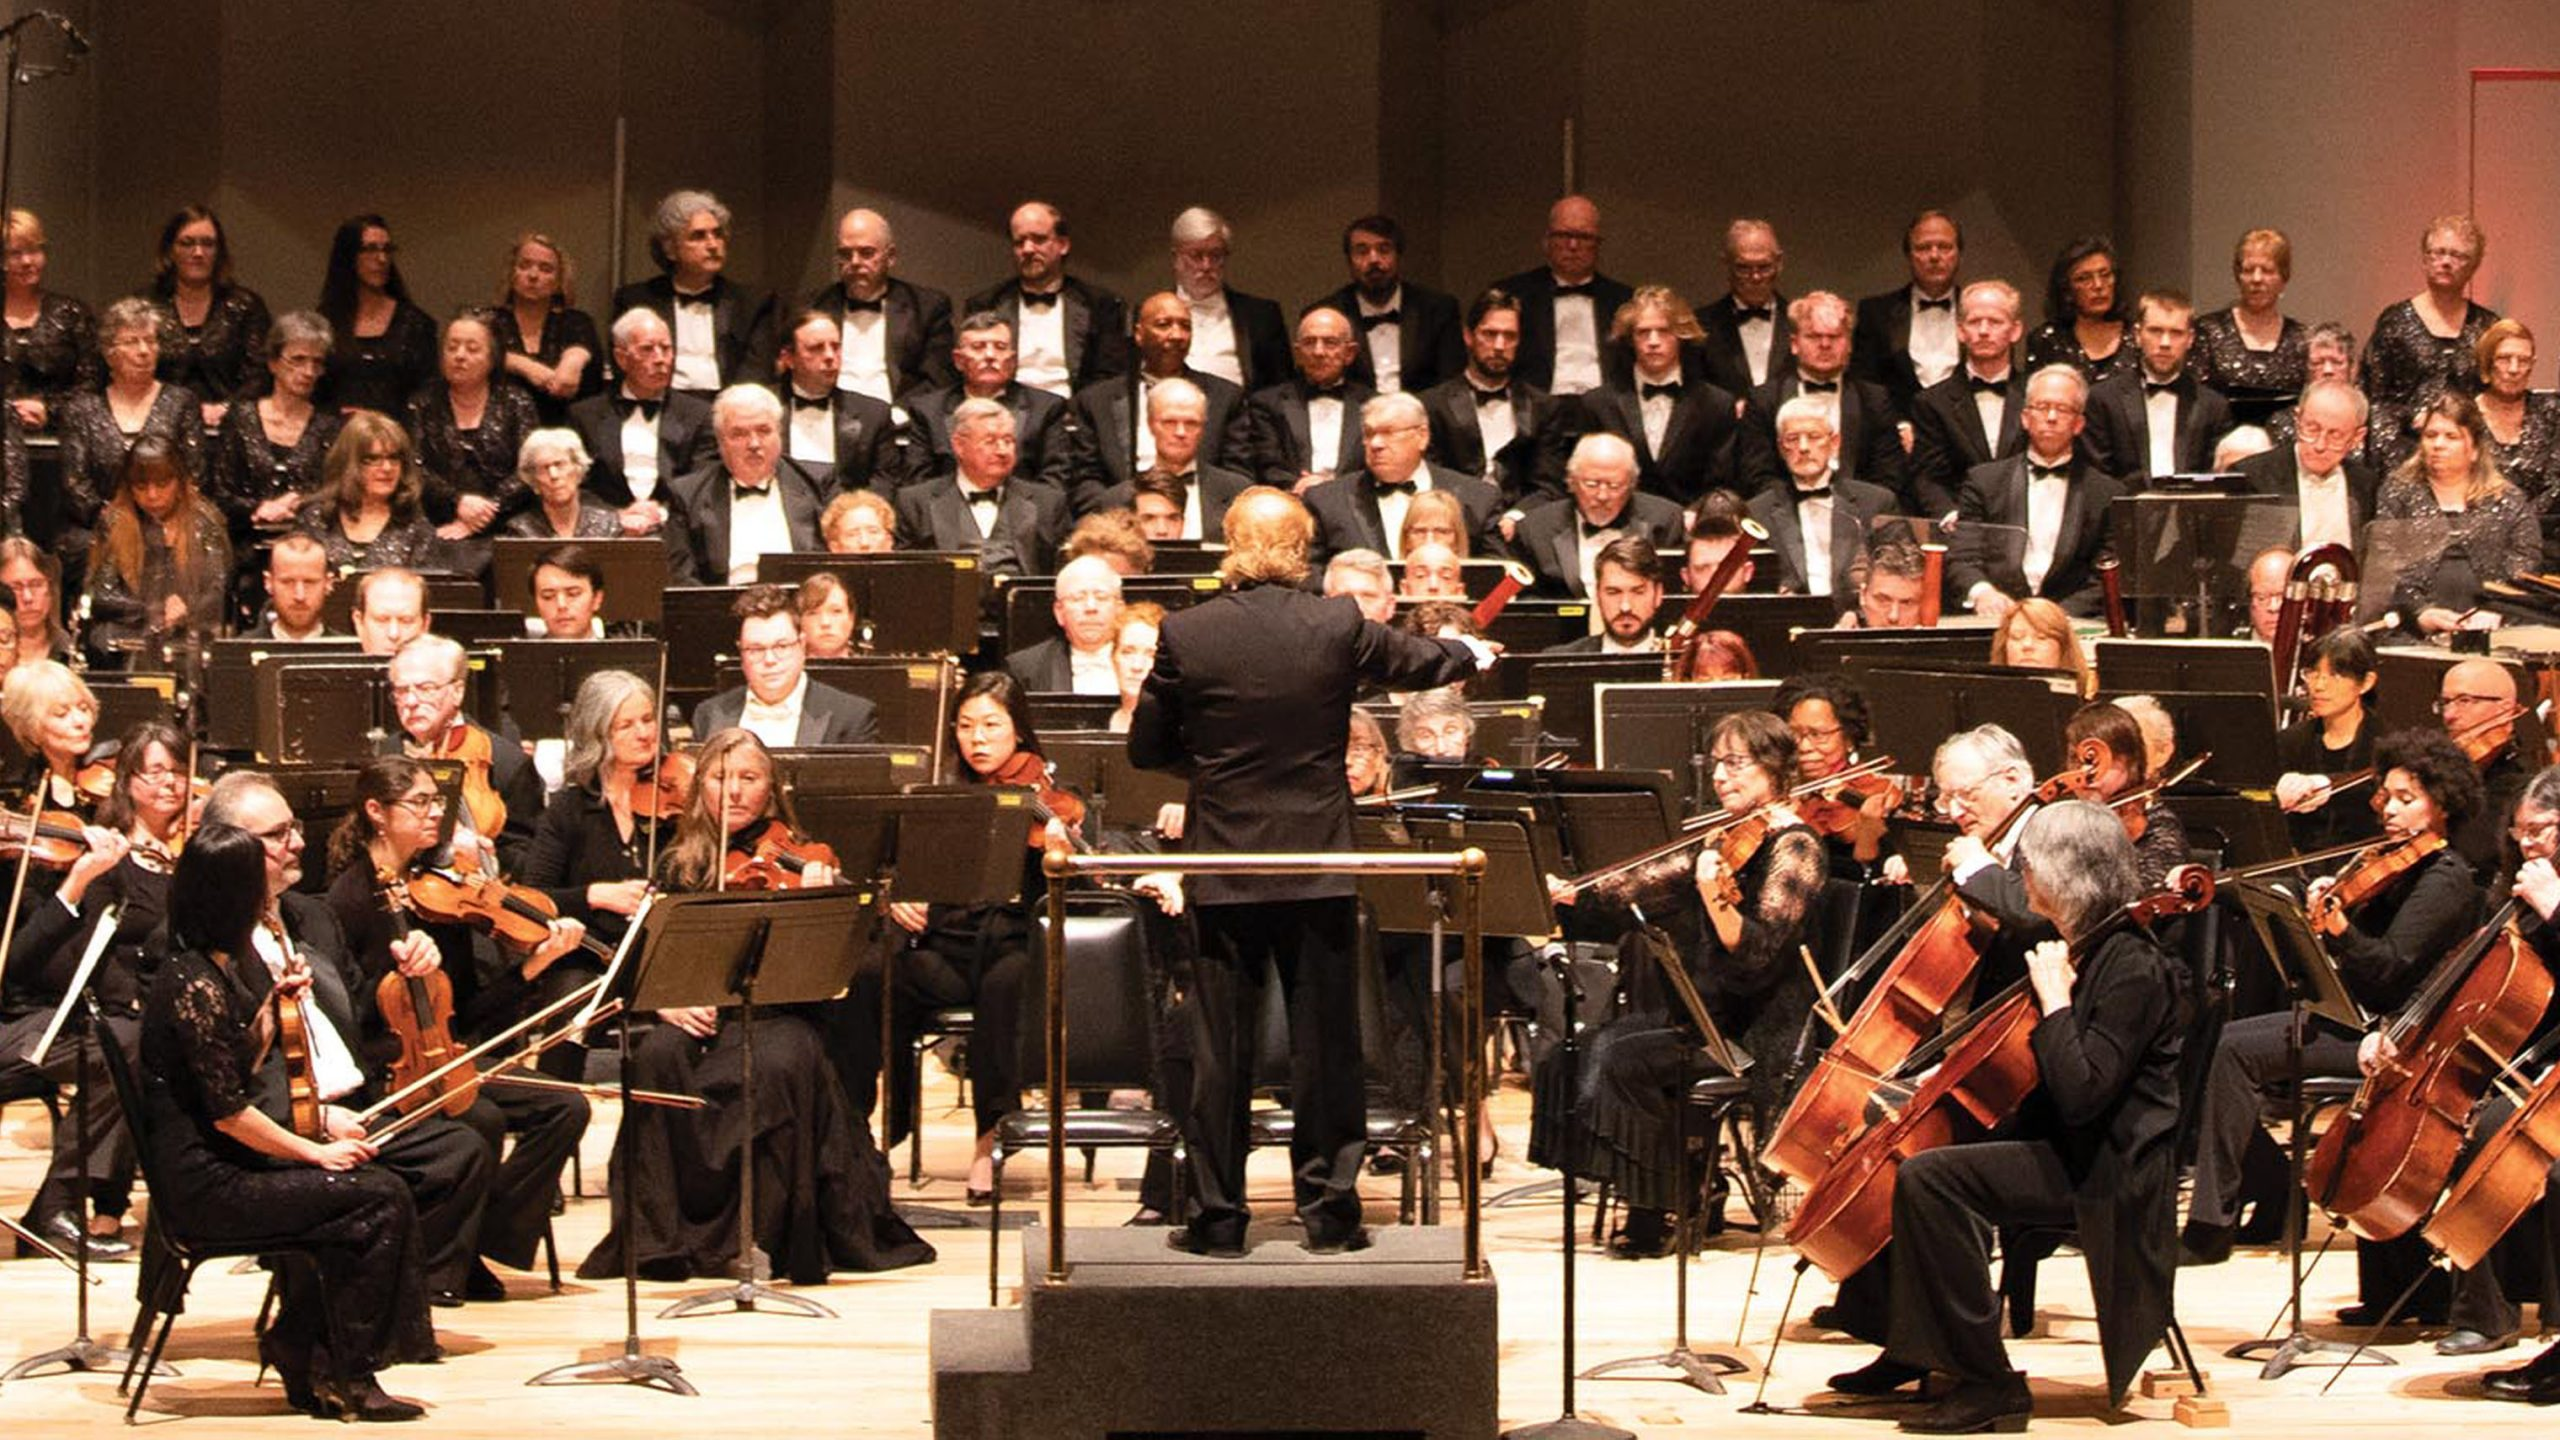 The Flint Symphony Orchestra